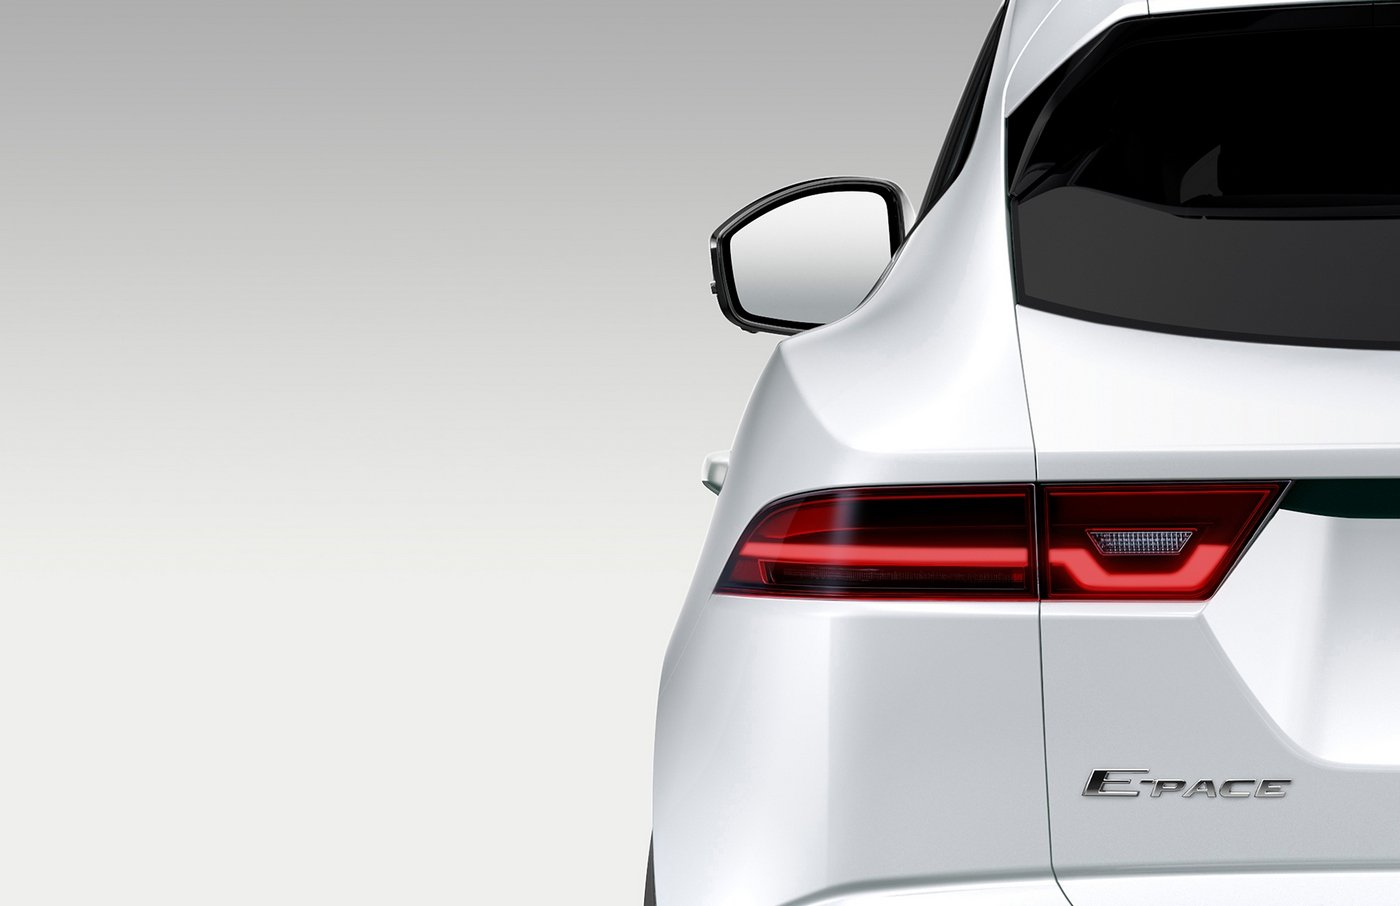 Jaguar teases upcoming E-Pace baby SUV, confirms to cost around $39,595